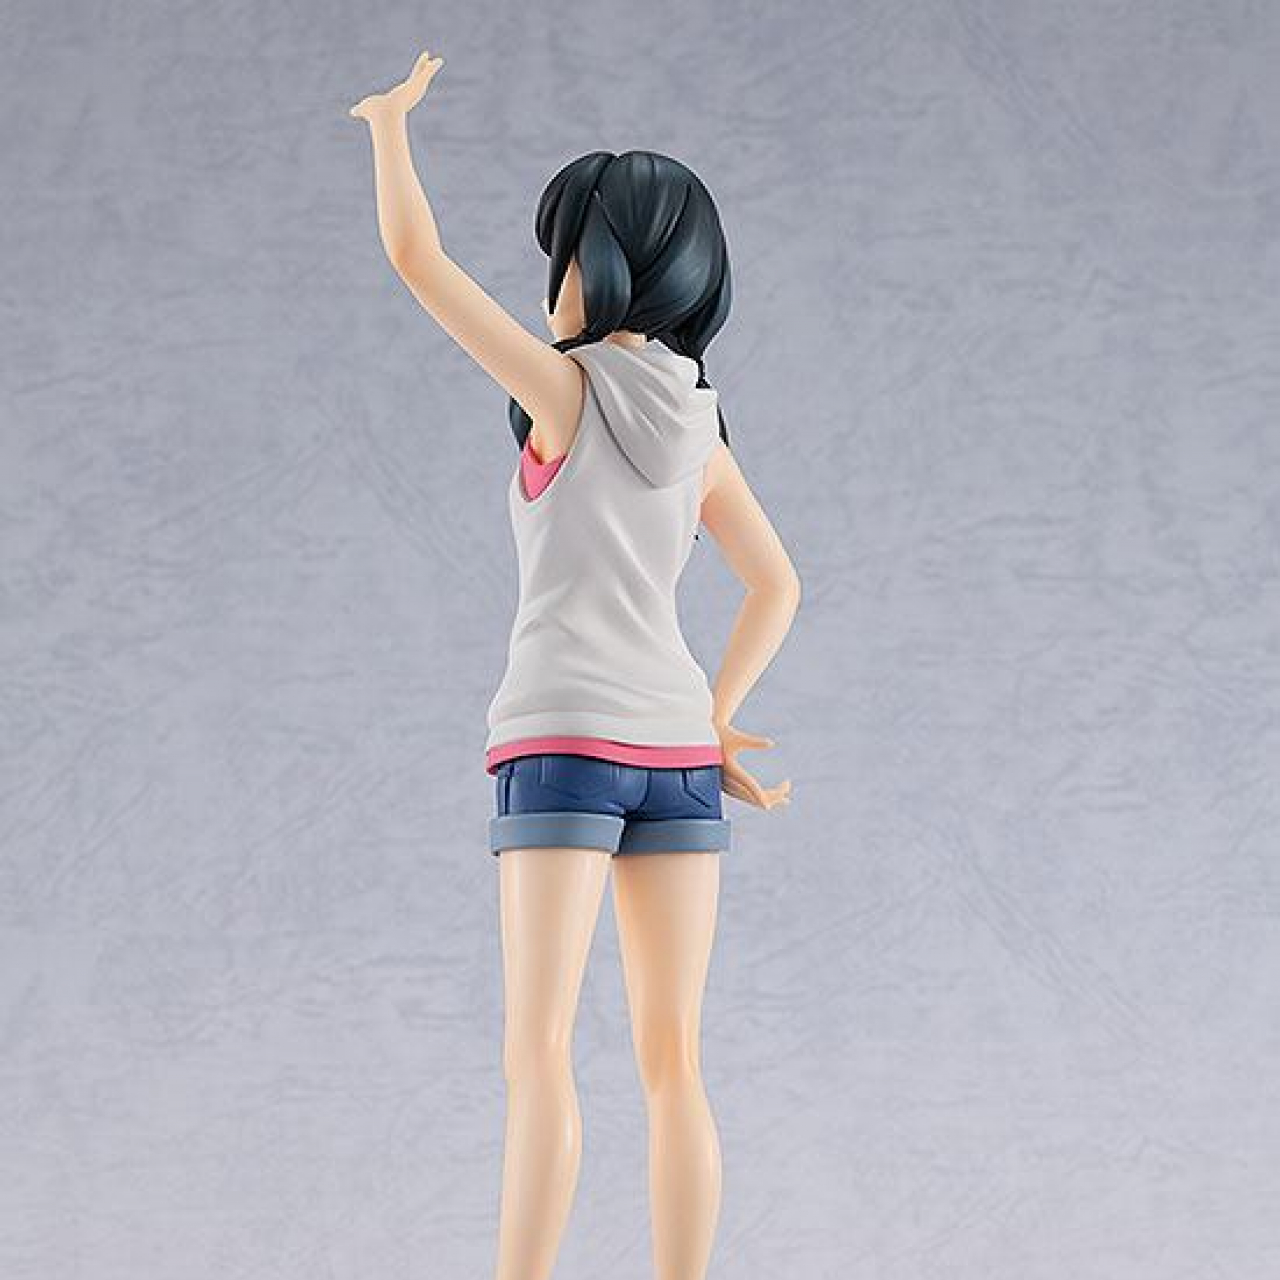 Weathering with You Pop Up Parade PVC Statue Hina Amano 20 cm